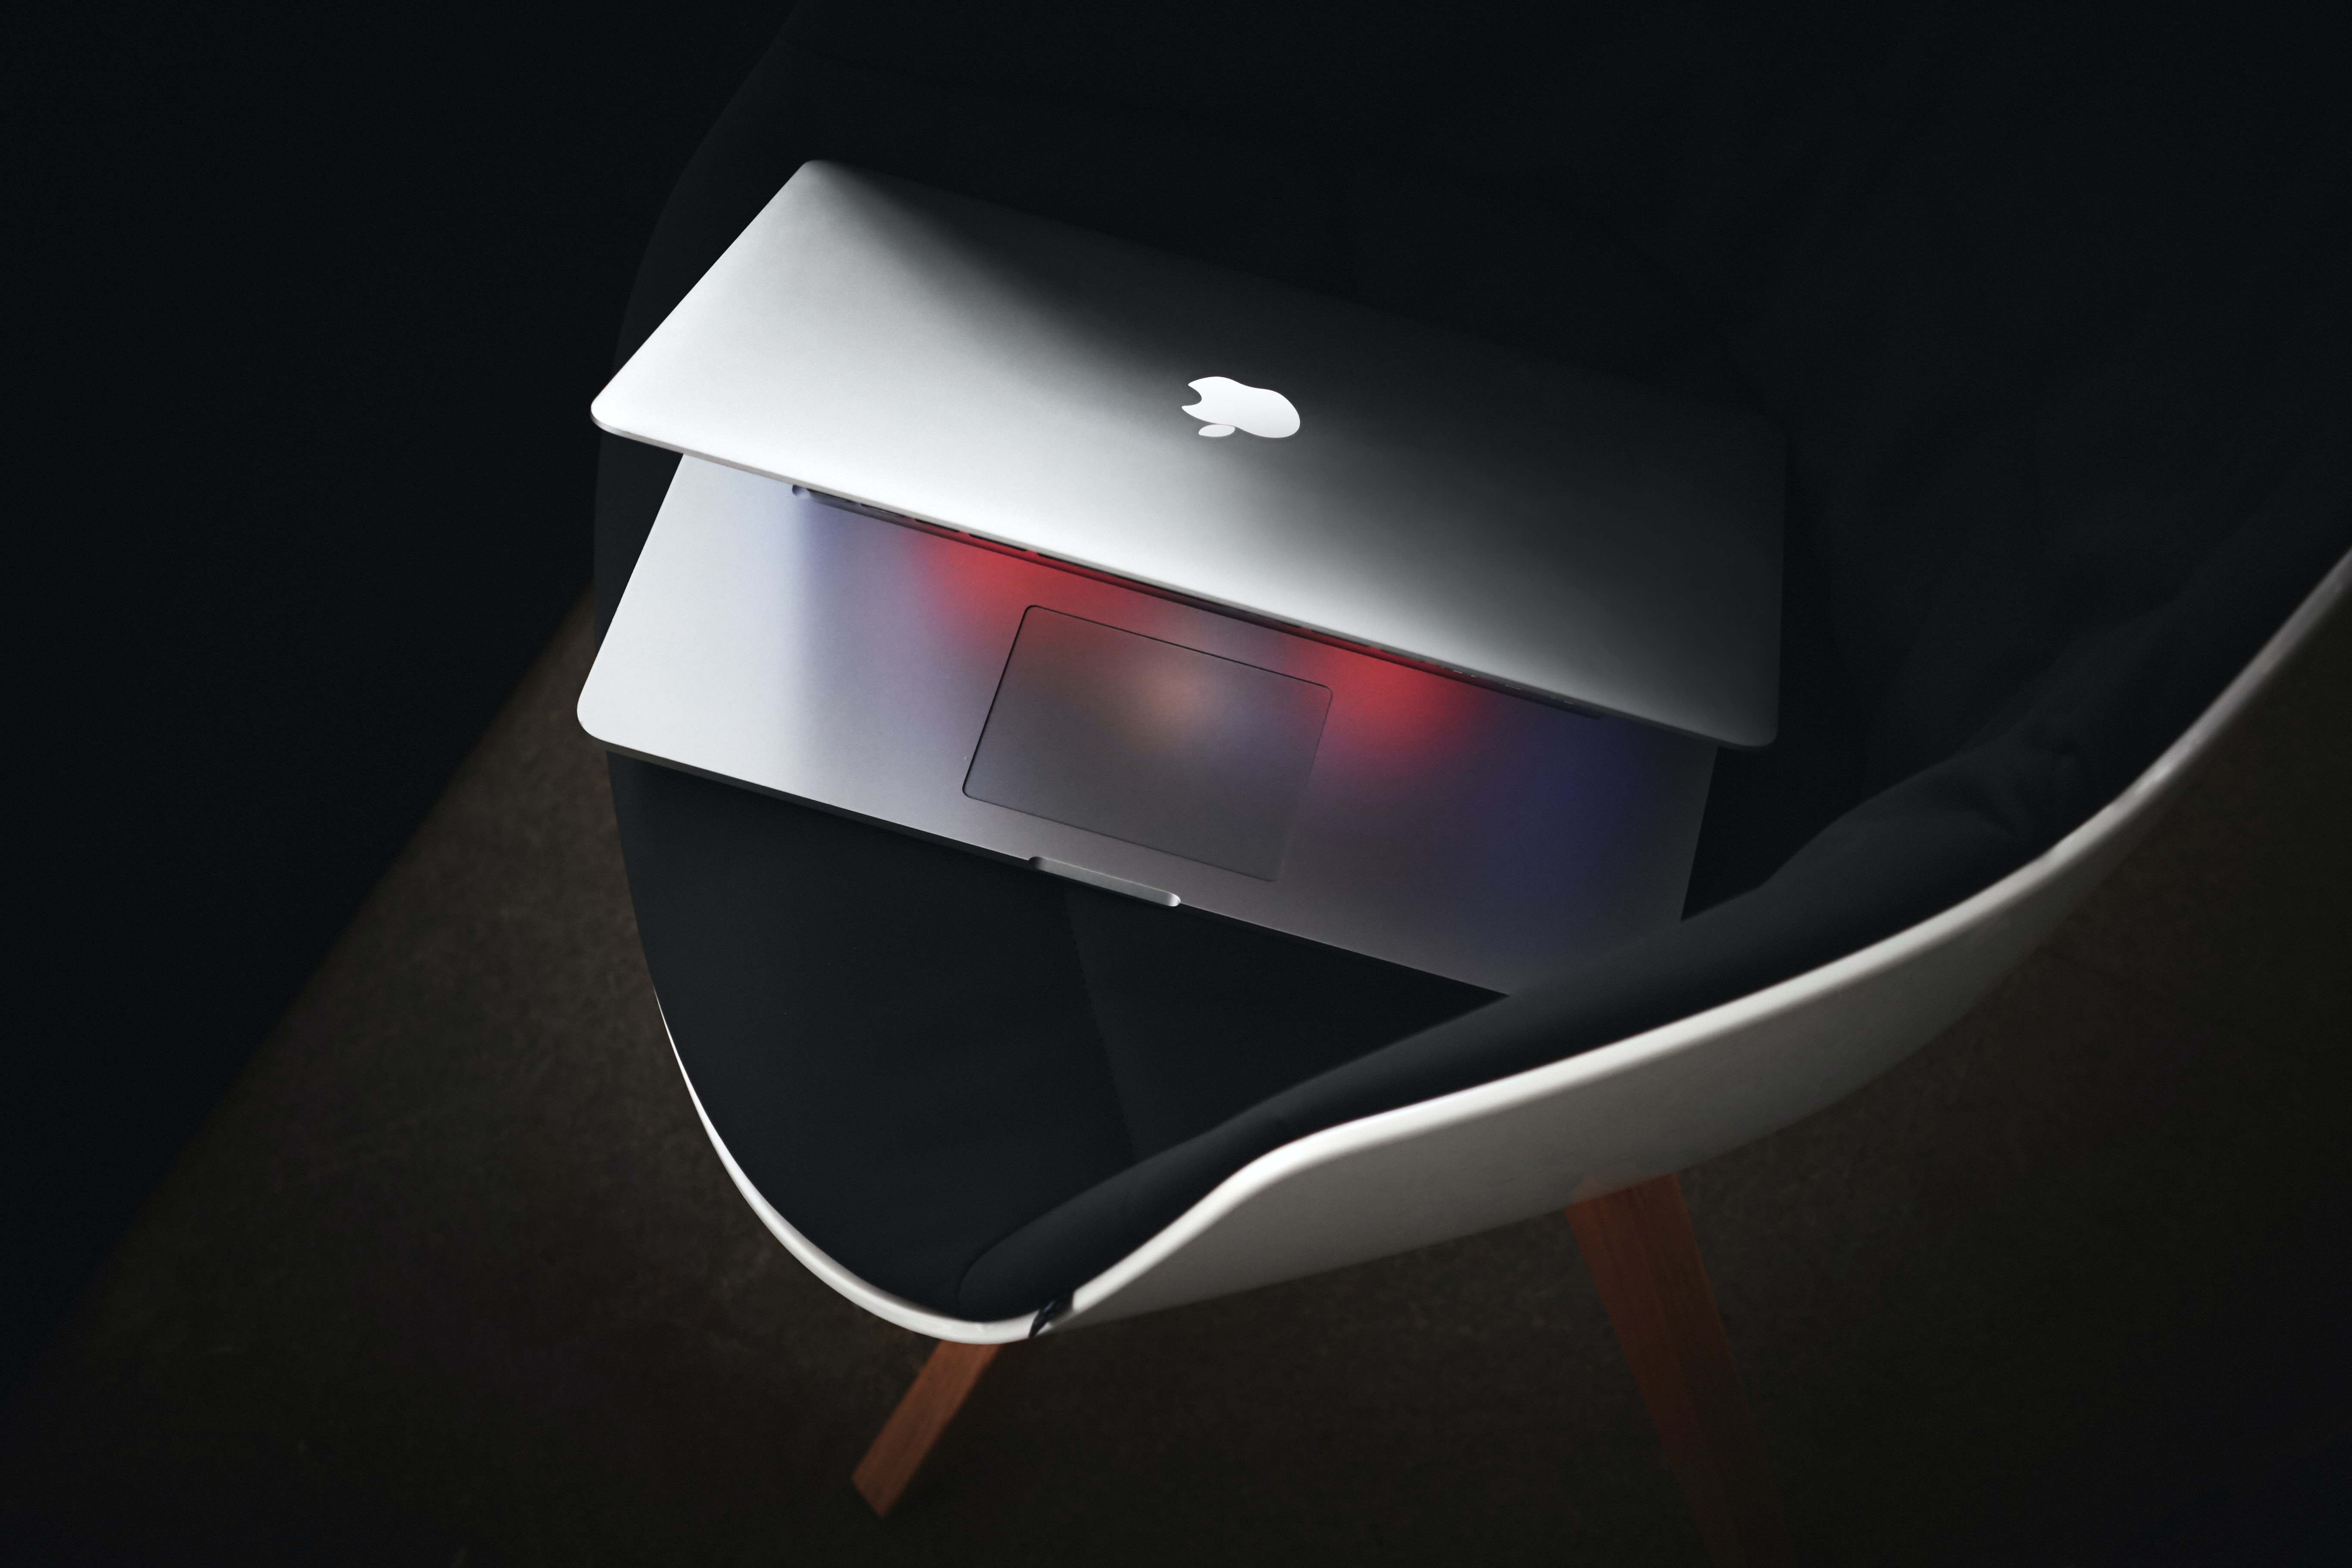 Macbook sitting half- open on a black chair in a black room